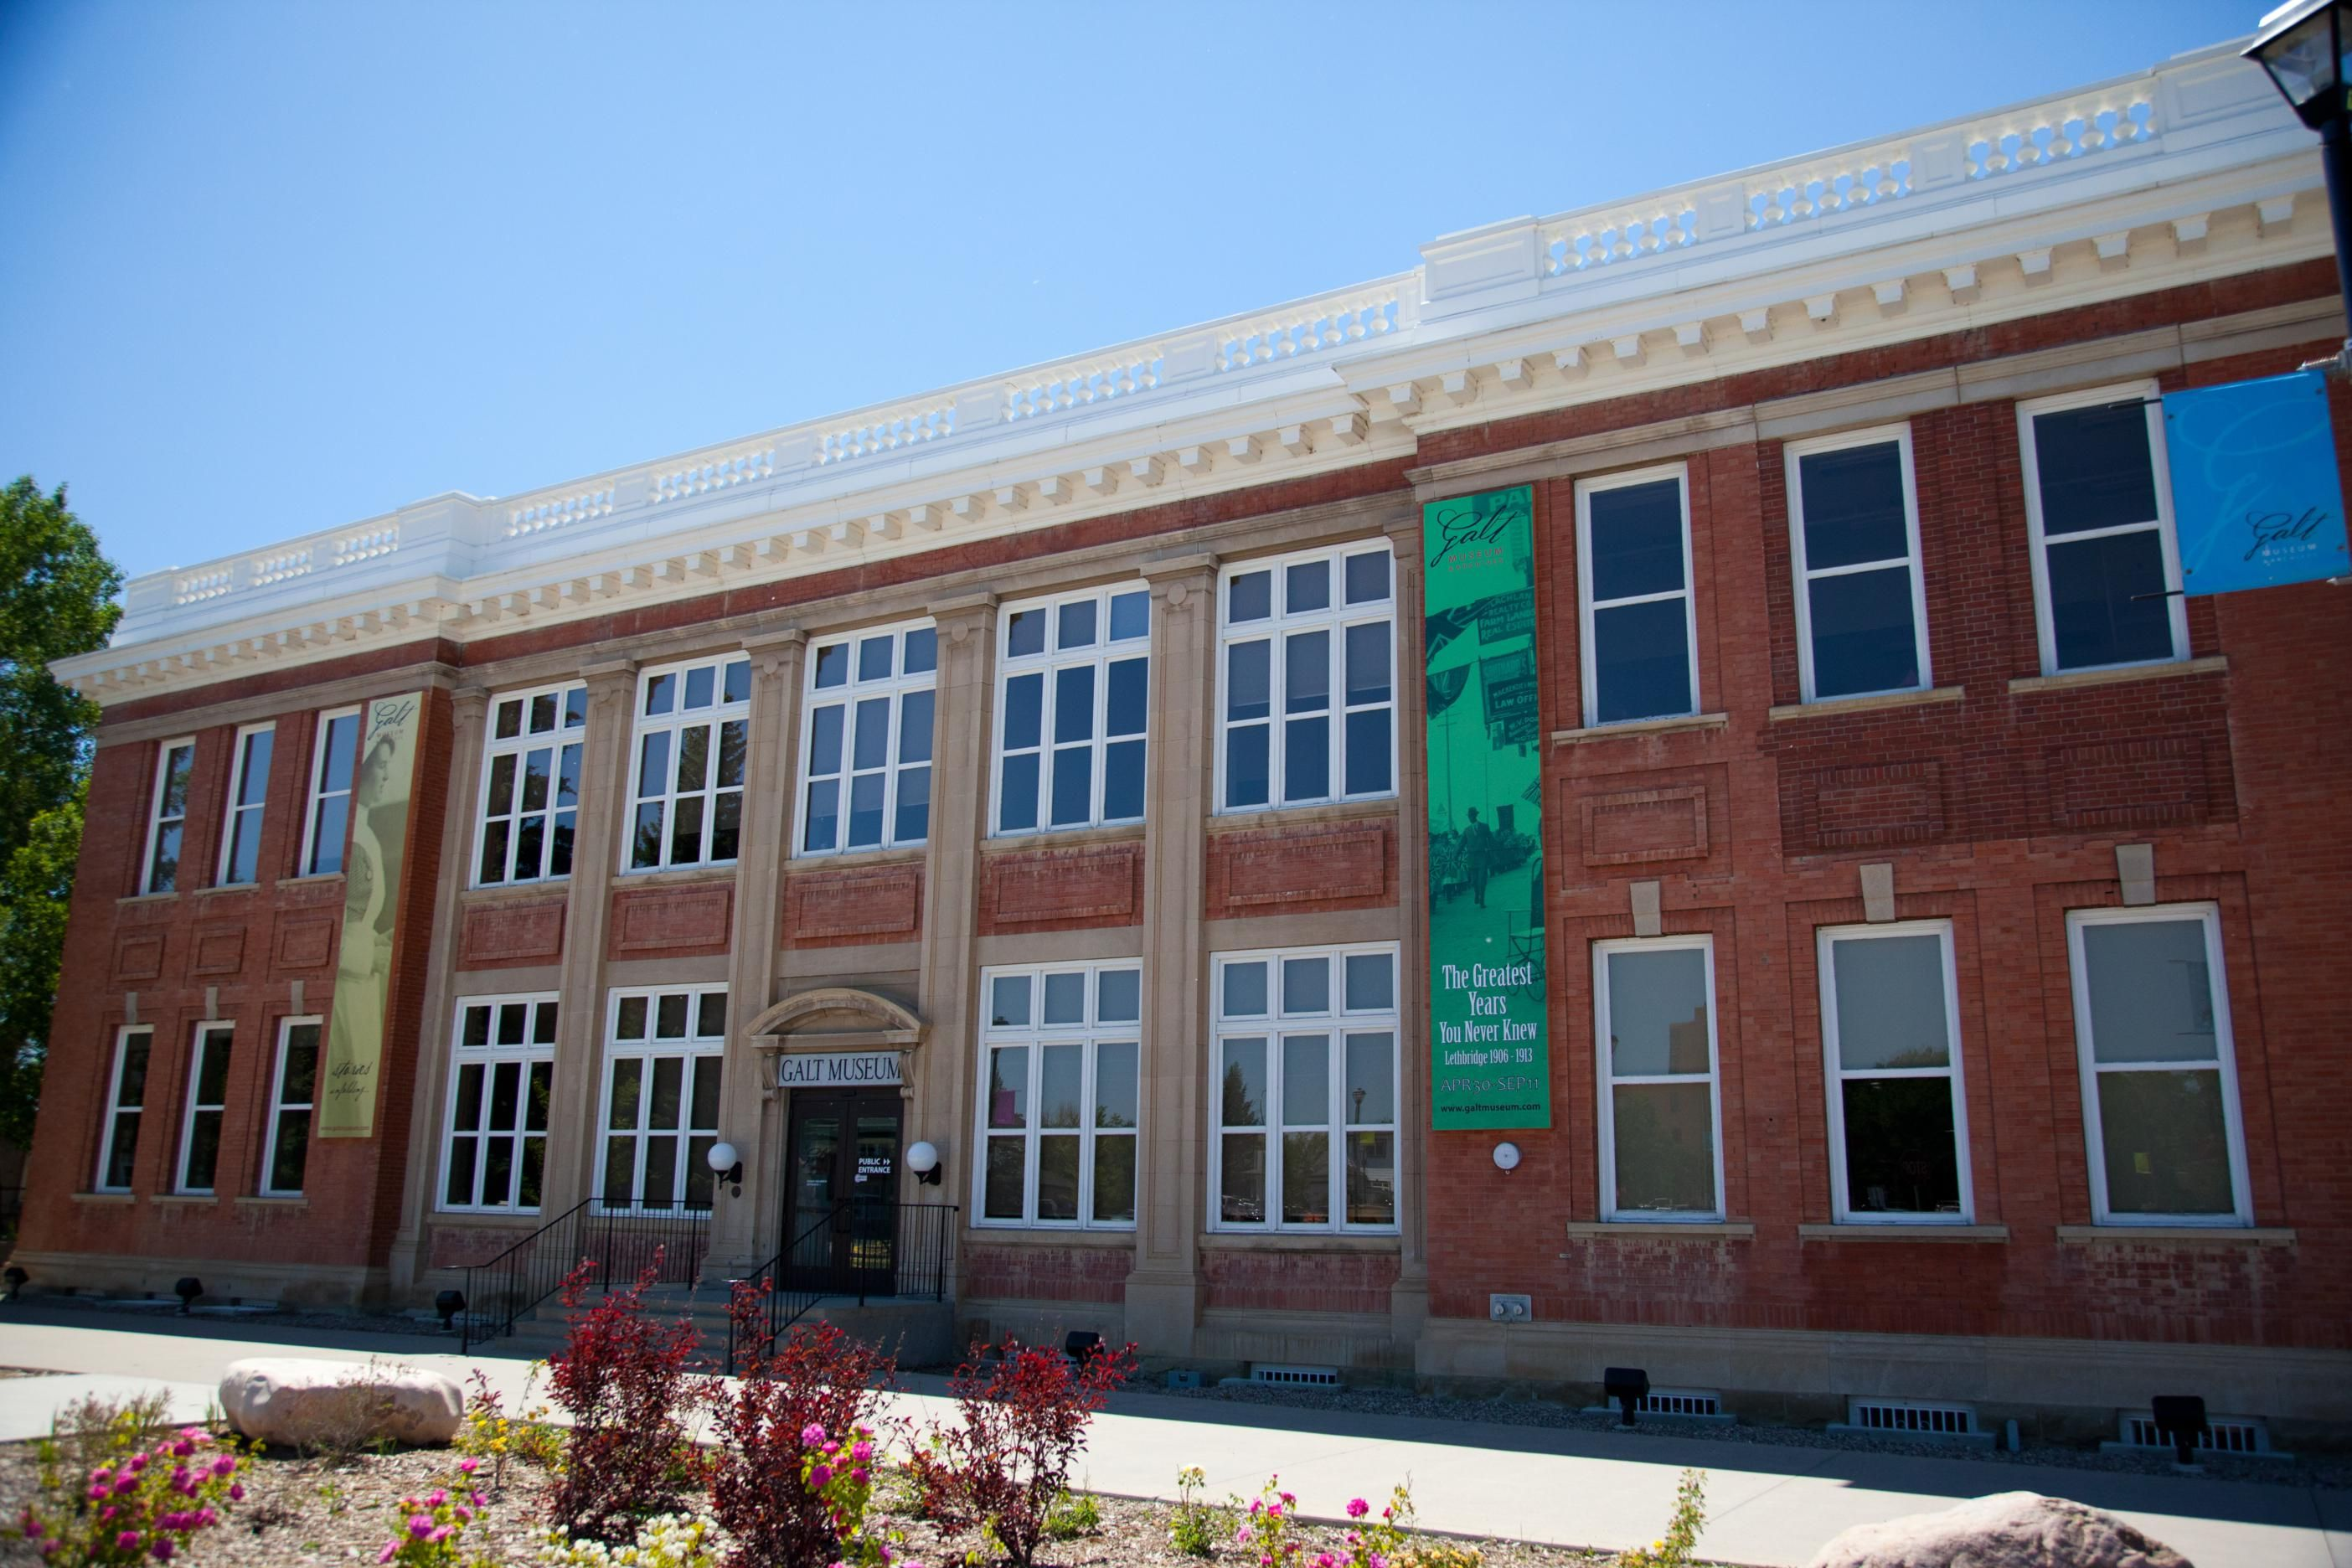 Galt Museum & Archives  http://www.exploresouthwestalberta.ca/galt-museum-and-archives?id=872